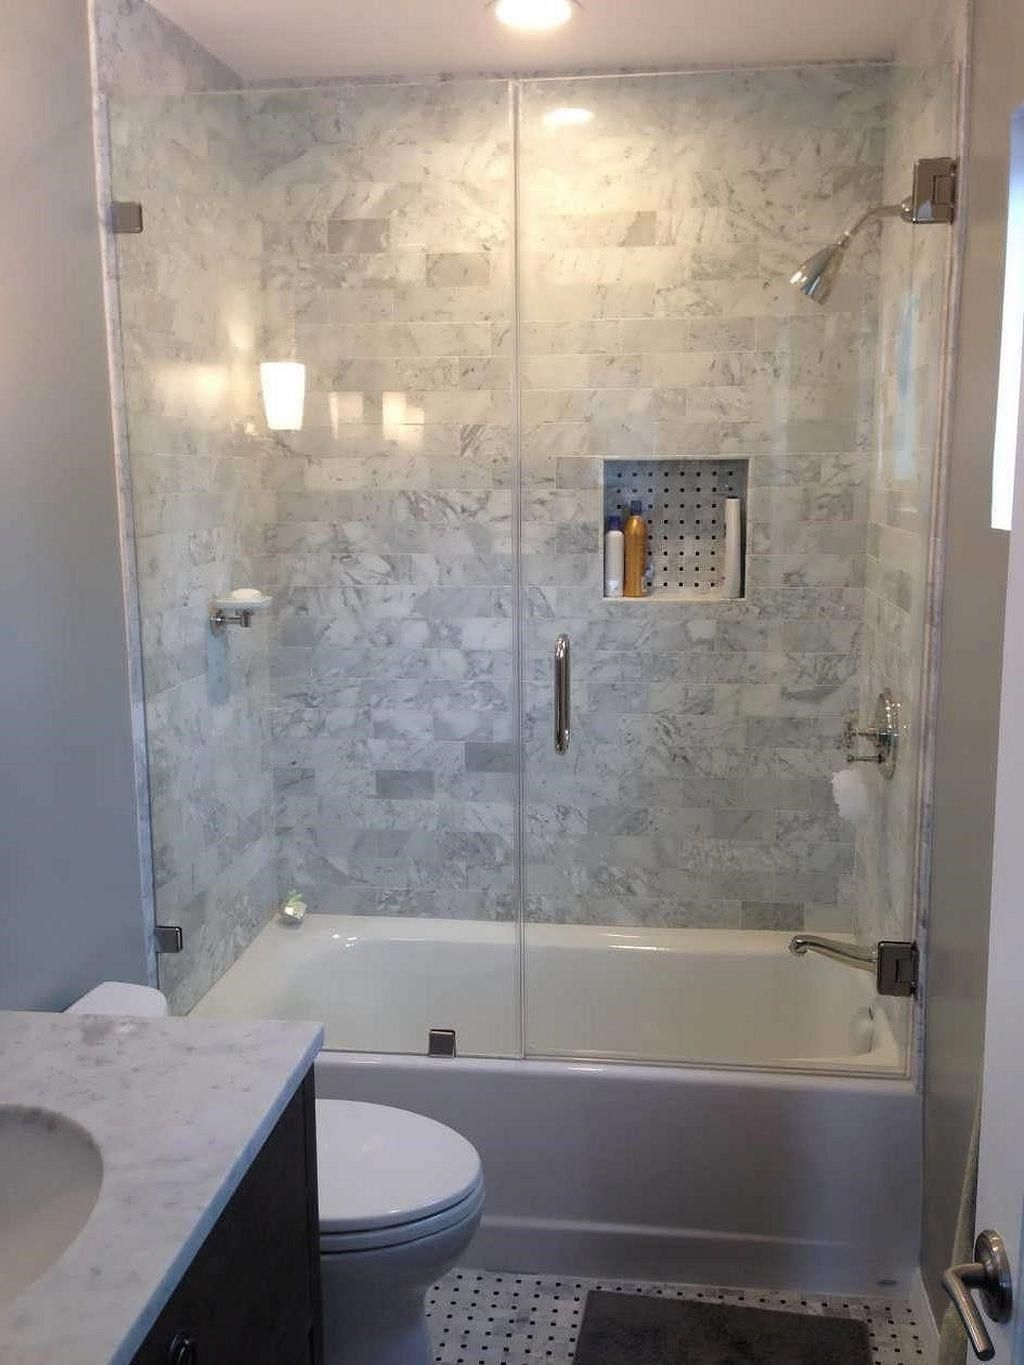 I will try this out when I am able to. Basic Bathroom Remodel #restroomremodel